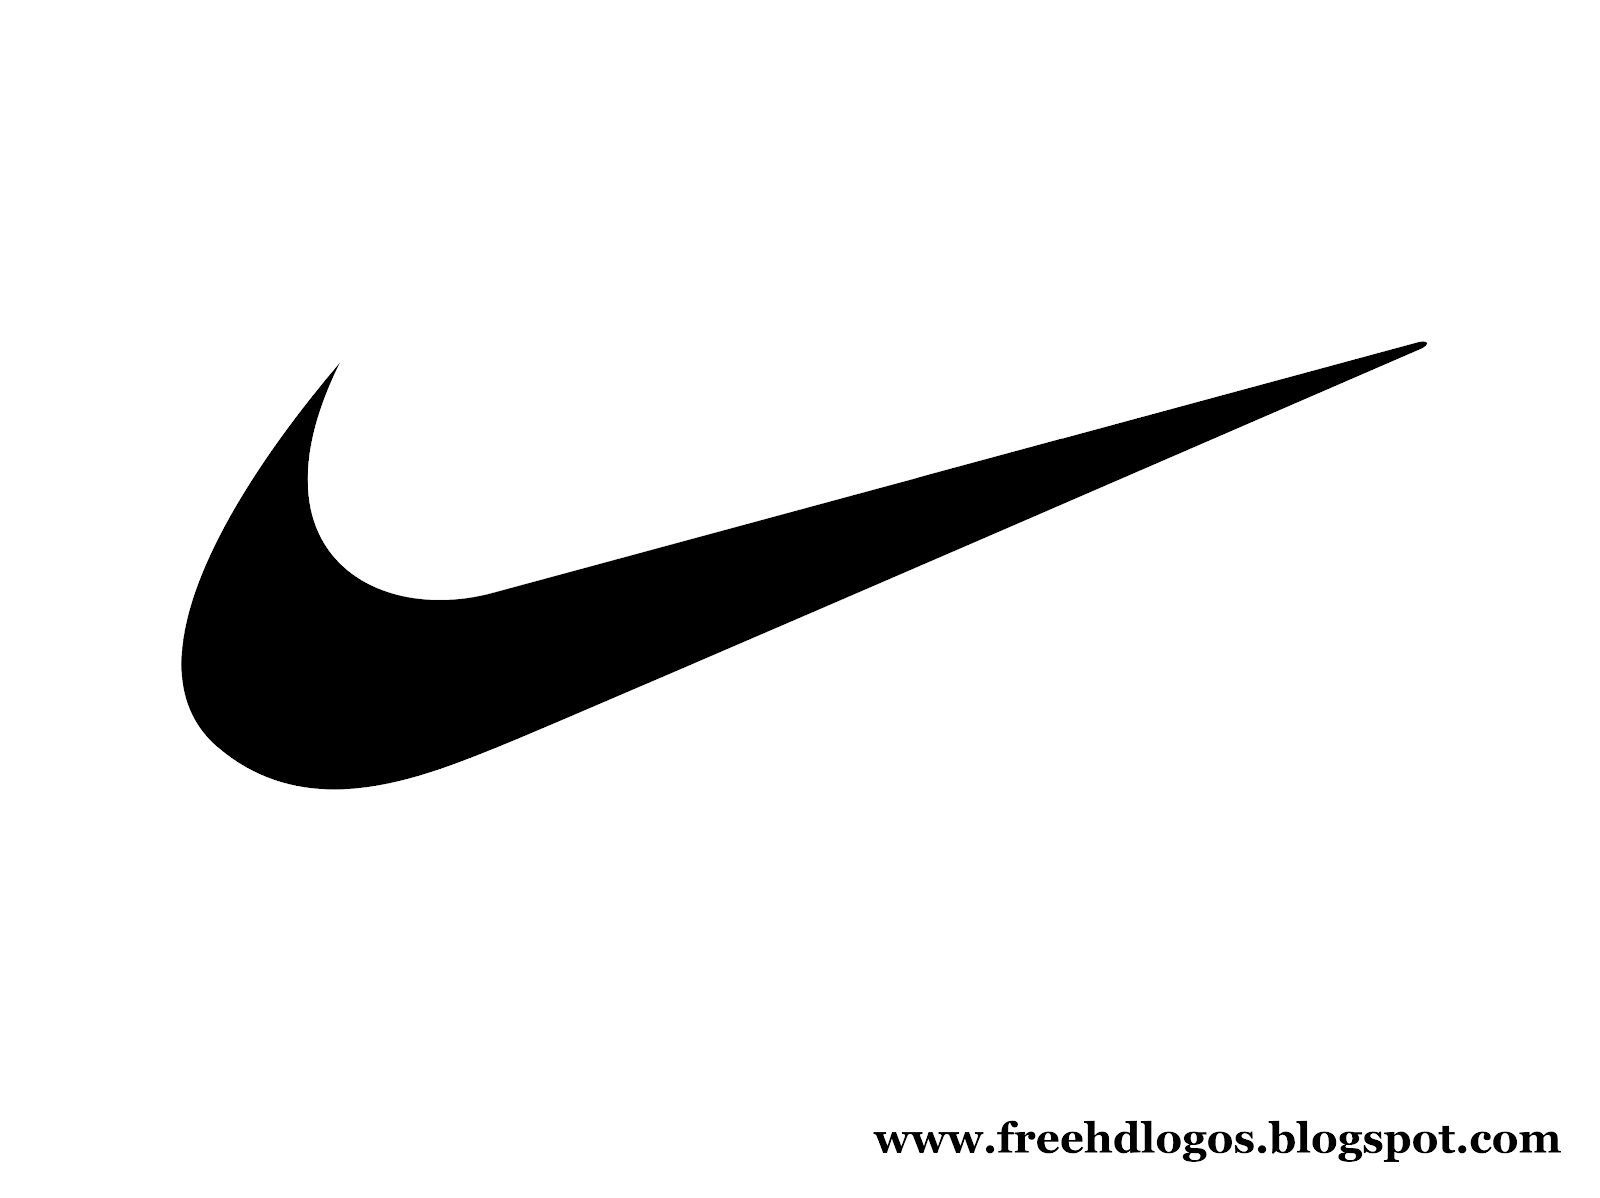 78+ images about Iconic Brand Logos on Pinterest | Logo branding ...